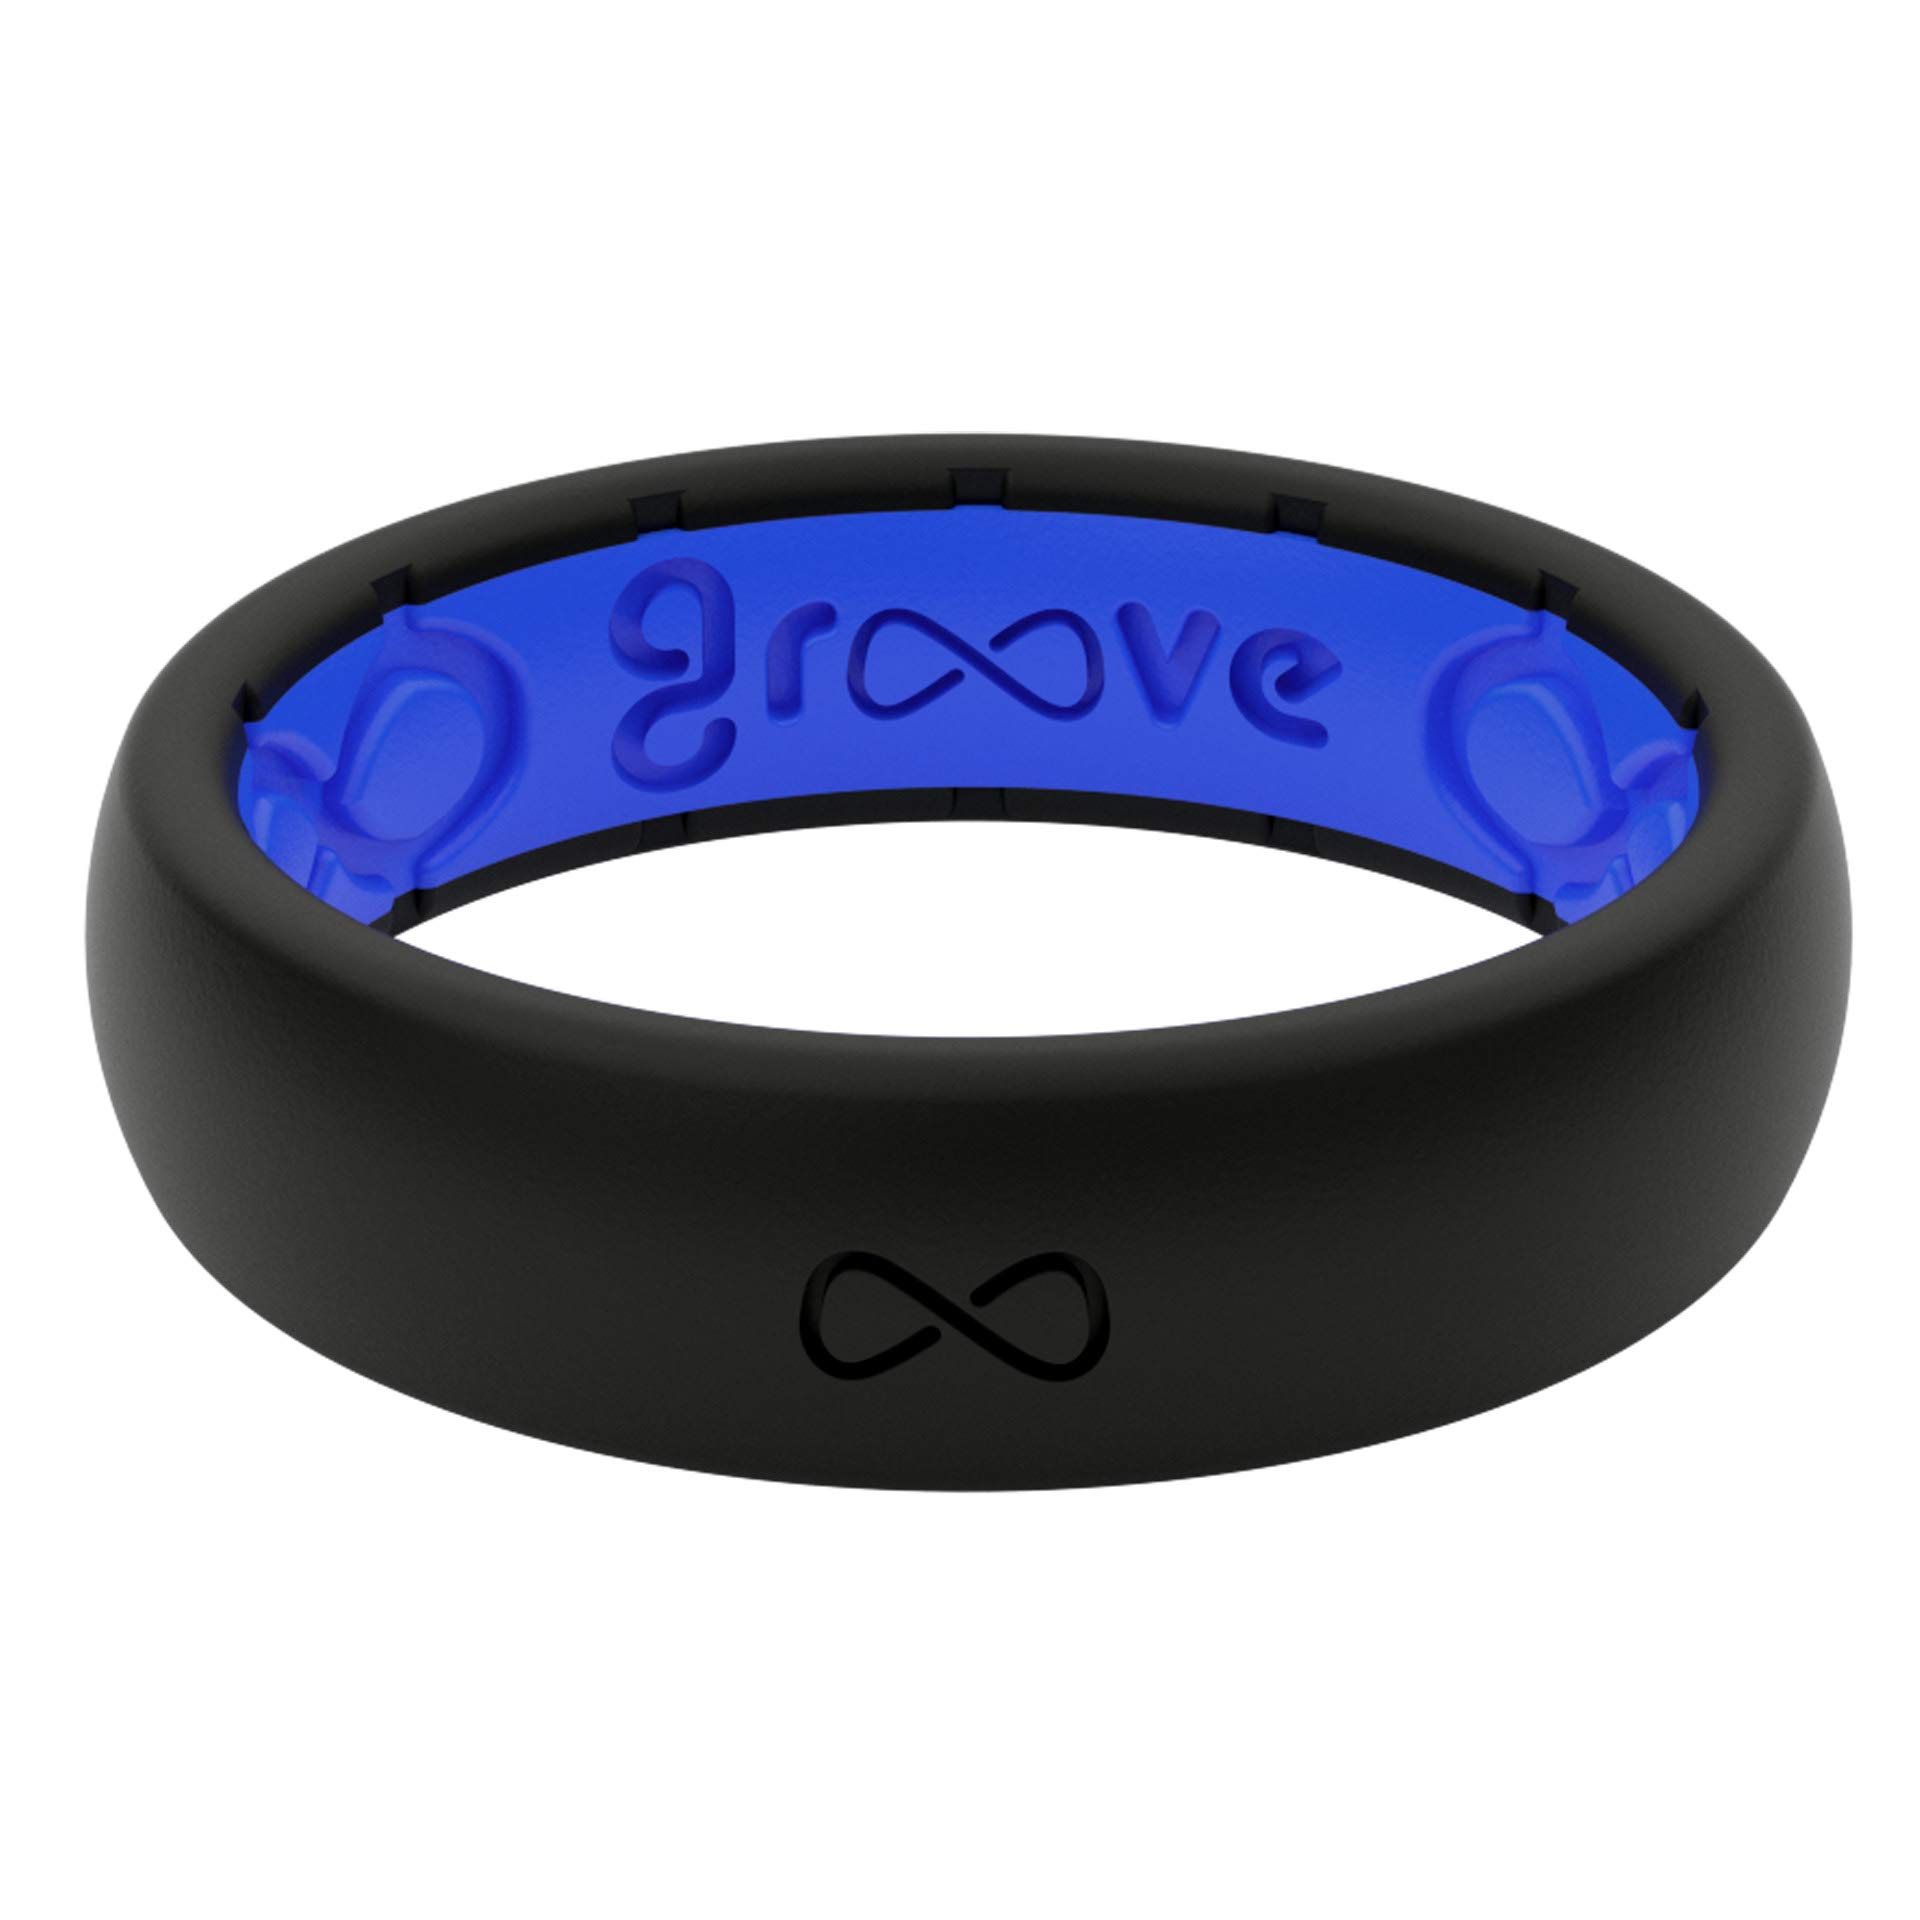 Groove Life - Silicone Ring for Men and for Women Wedding or Engagement Rubber Band with, Breathable Grooves, and Durability - Thin Solid Midnight Black/Deep Blue Size 4